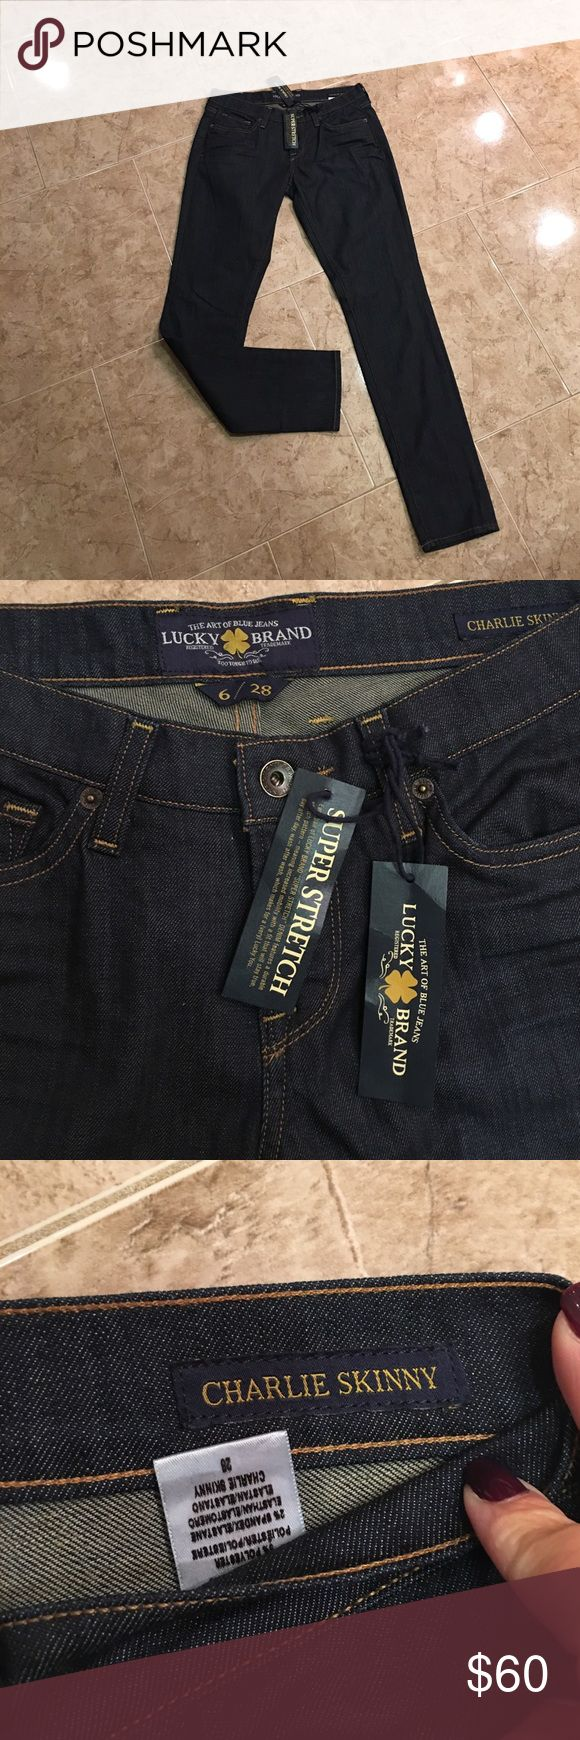 Lucky Brand Jeans BRAND NWT! Lucky Brand Jeans Brand New! Dark Blue Jeans with Brown stitching. Great for casual wear , hanging out with friends or going on a date! Willing to negotiate all prices! Lucky Brand Jeans Skinny